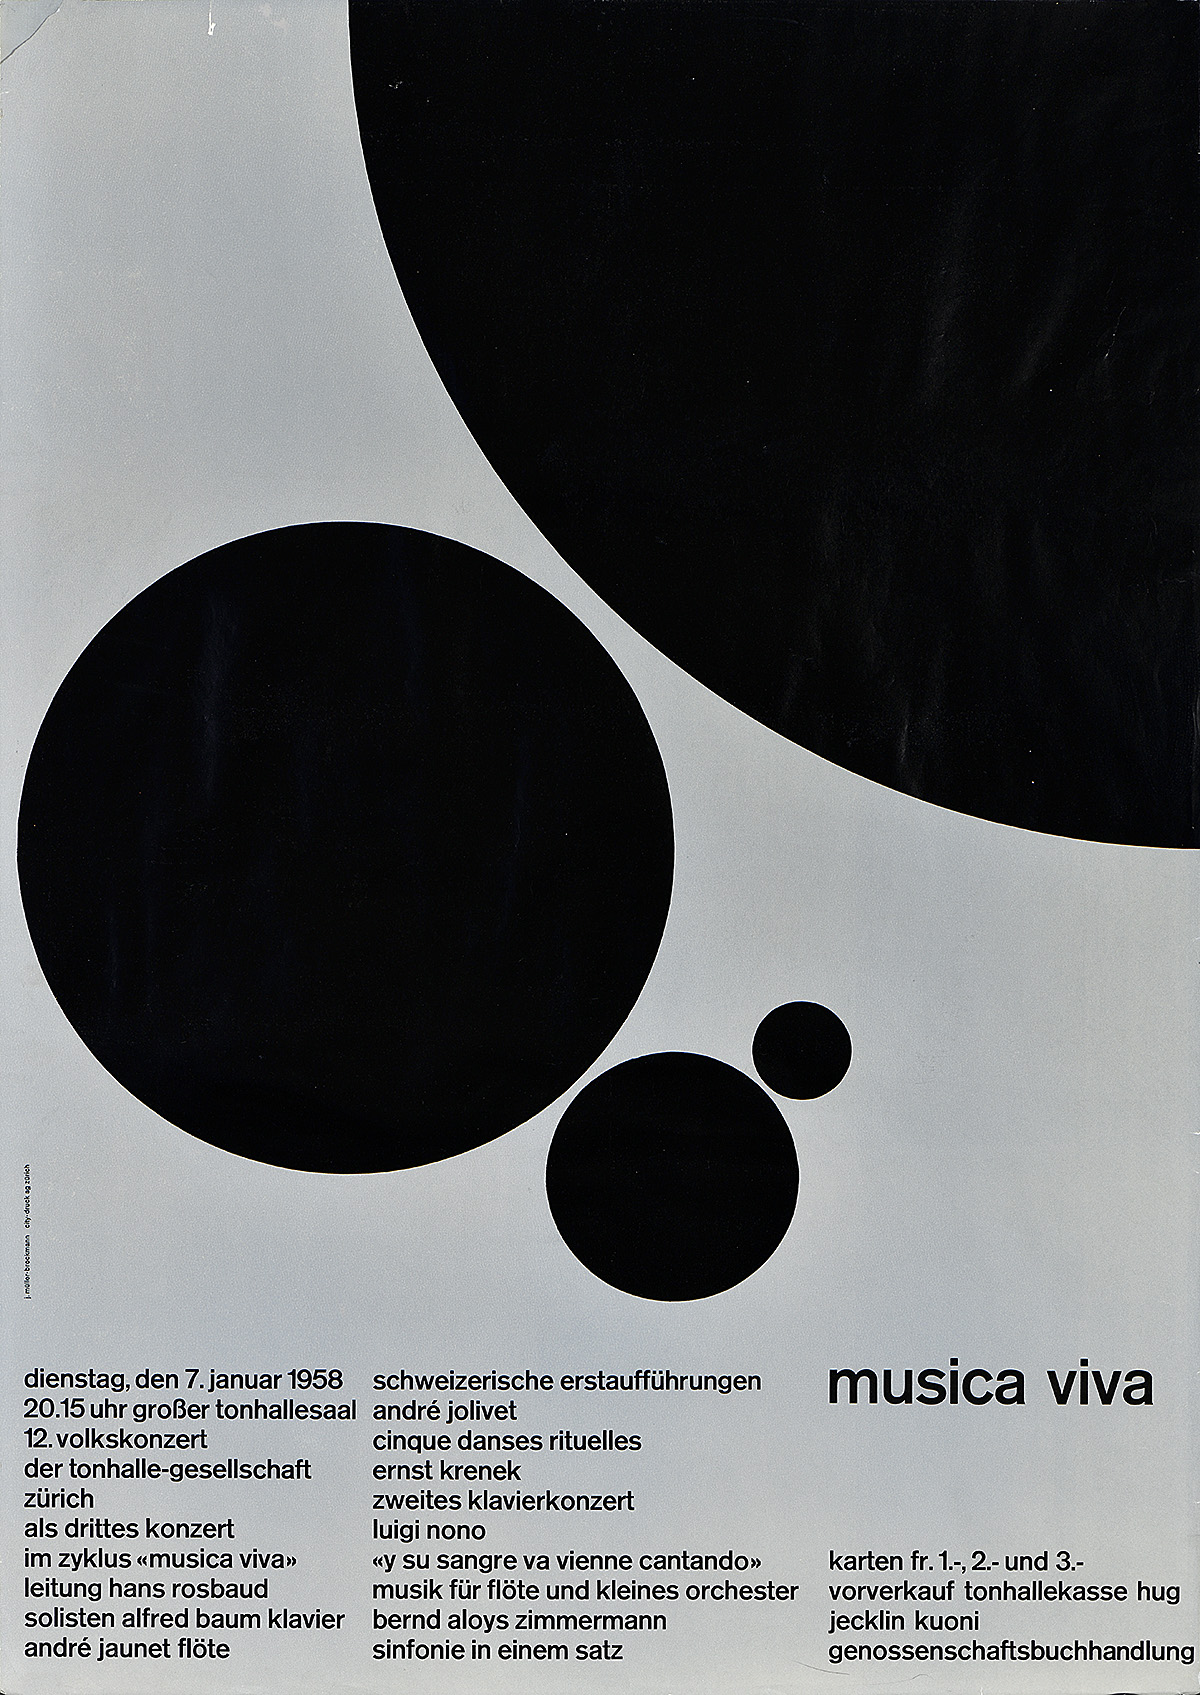 illustrational poster of four black circles of various sizes on a grey background